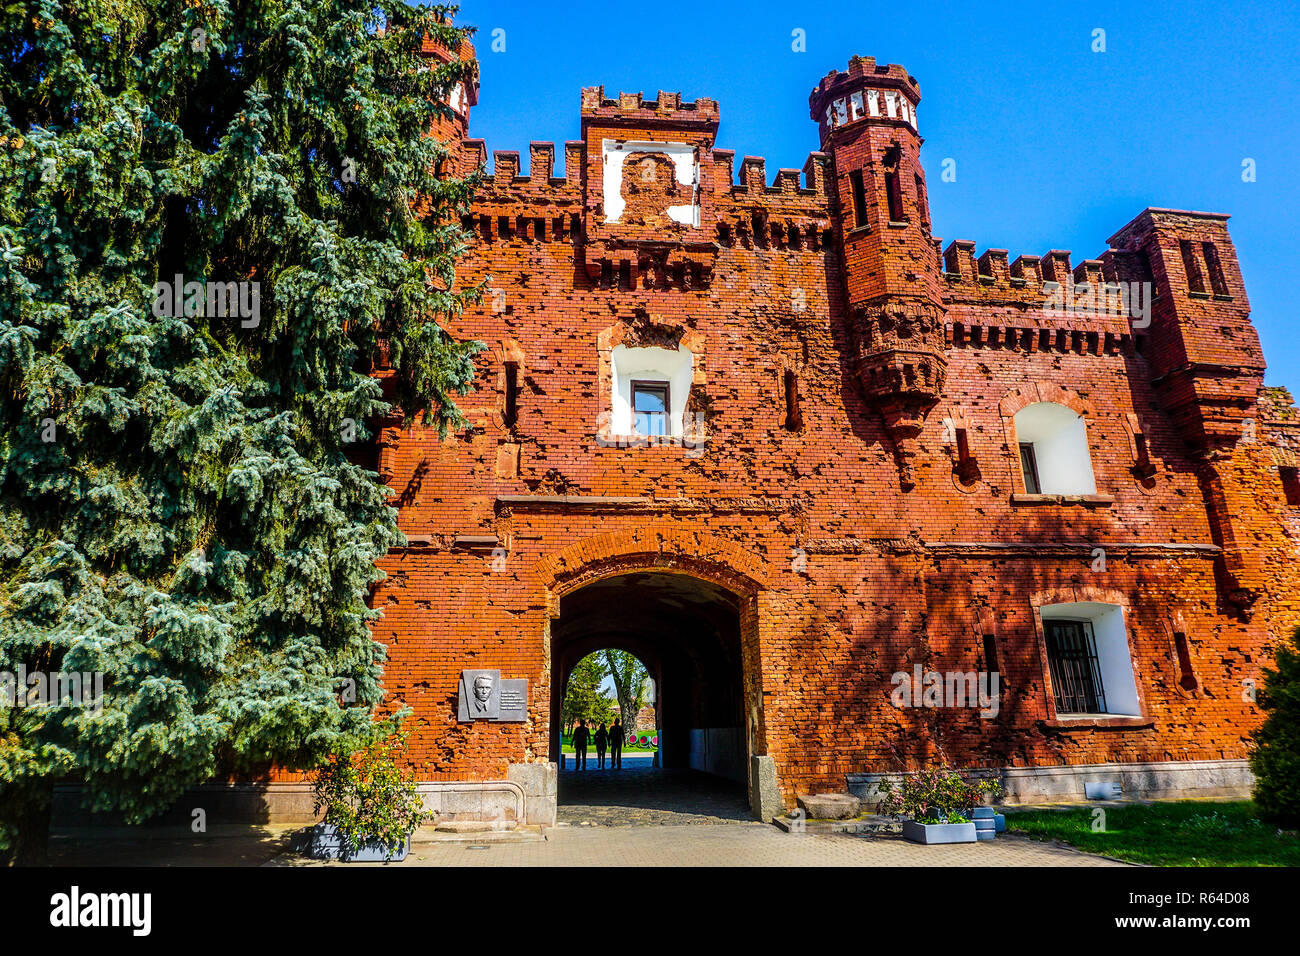 Brest Fortress Hero Complex Kholmskiye Vorota Gate Entrance - Stock Image